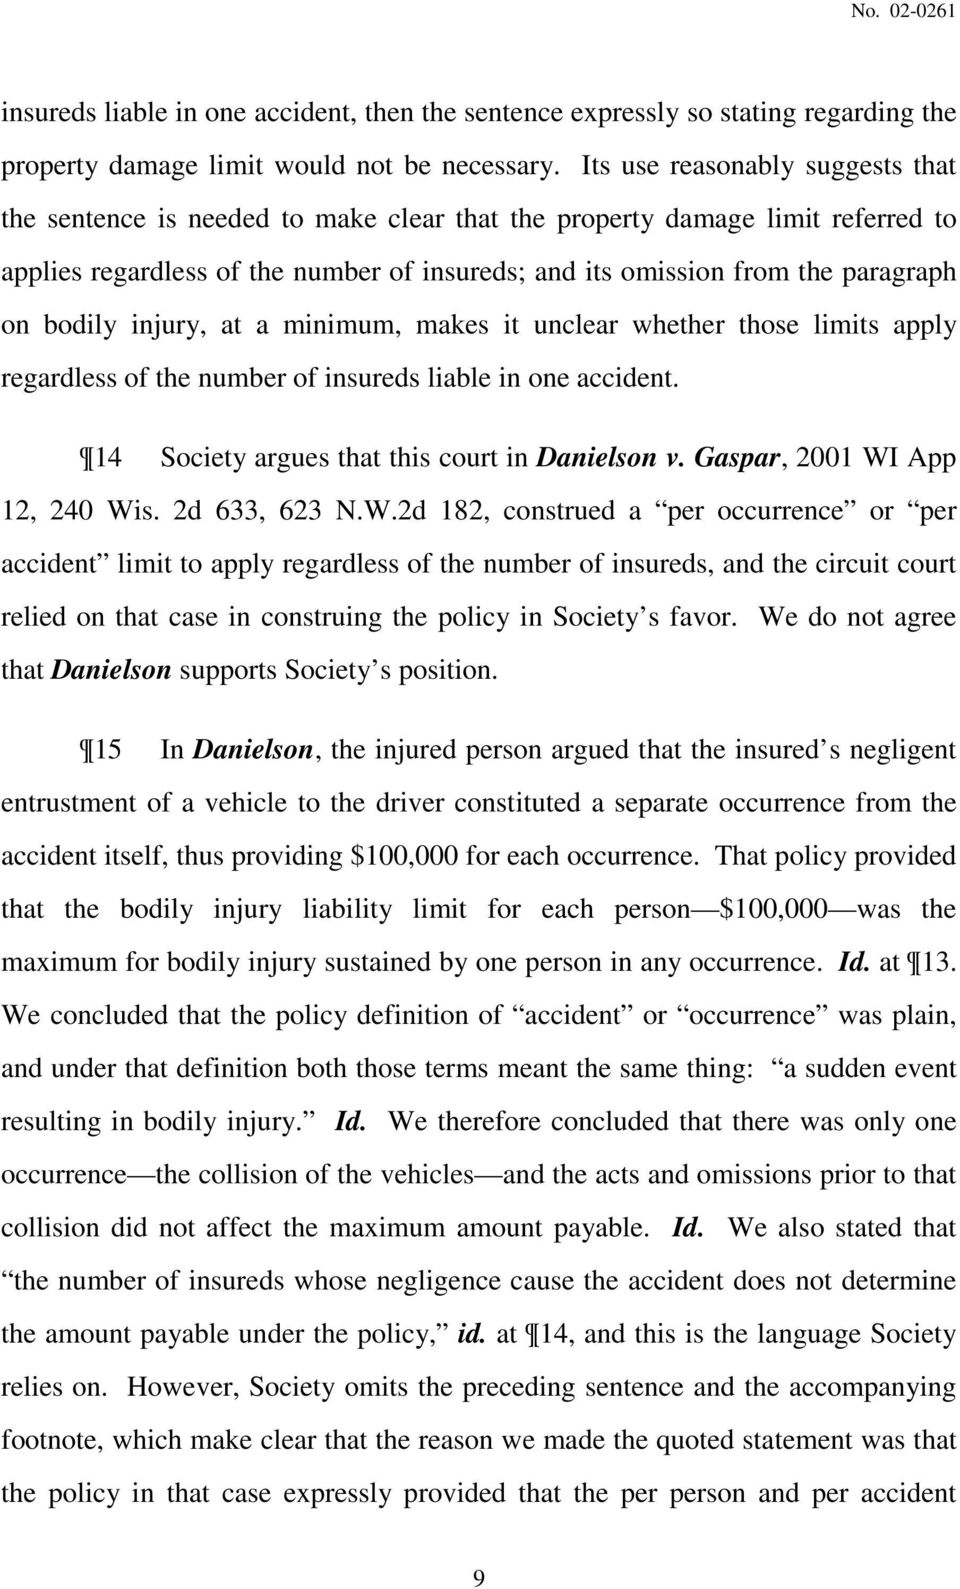 bodily injury, at a minimum, makes it unclear whether those limits apply regardless of the number of insureds liable in one accident. 14 Society argues that this court in Danielson v.